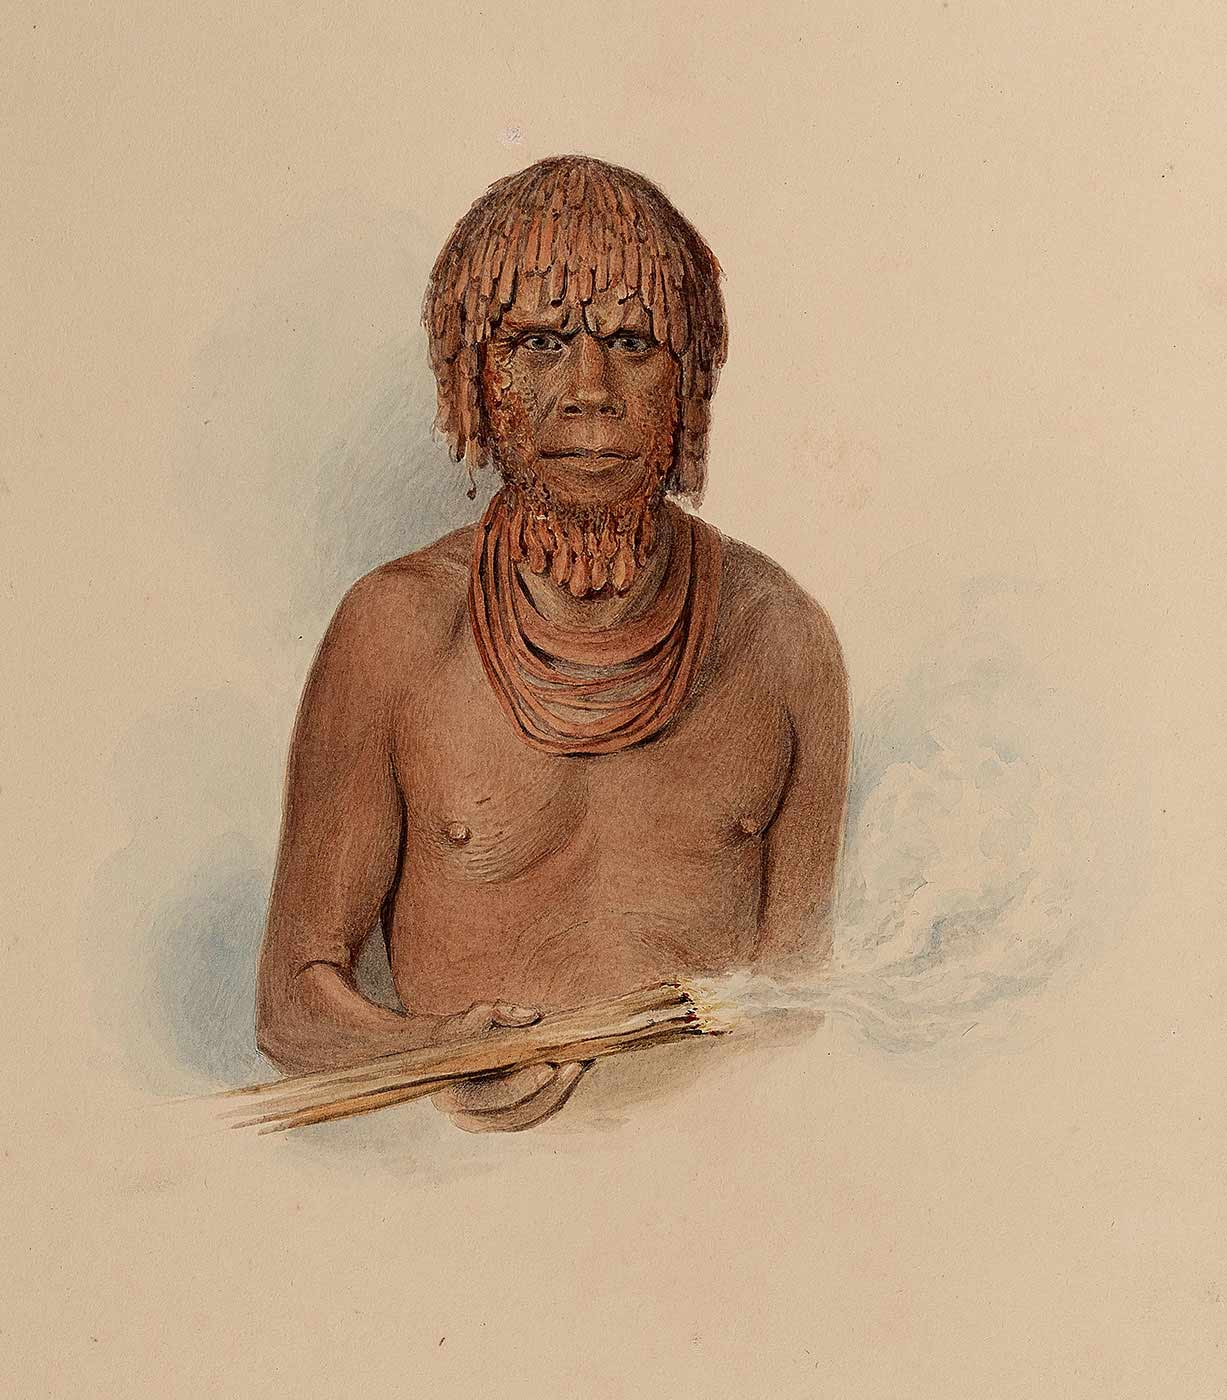 Watercolour painting featuring an Aboriginal man with dressed hair and beard; he is wearing necklaces and holding a fire stick. - click to view larger image